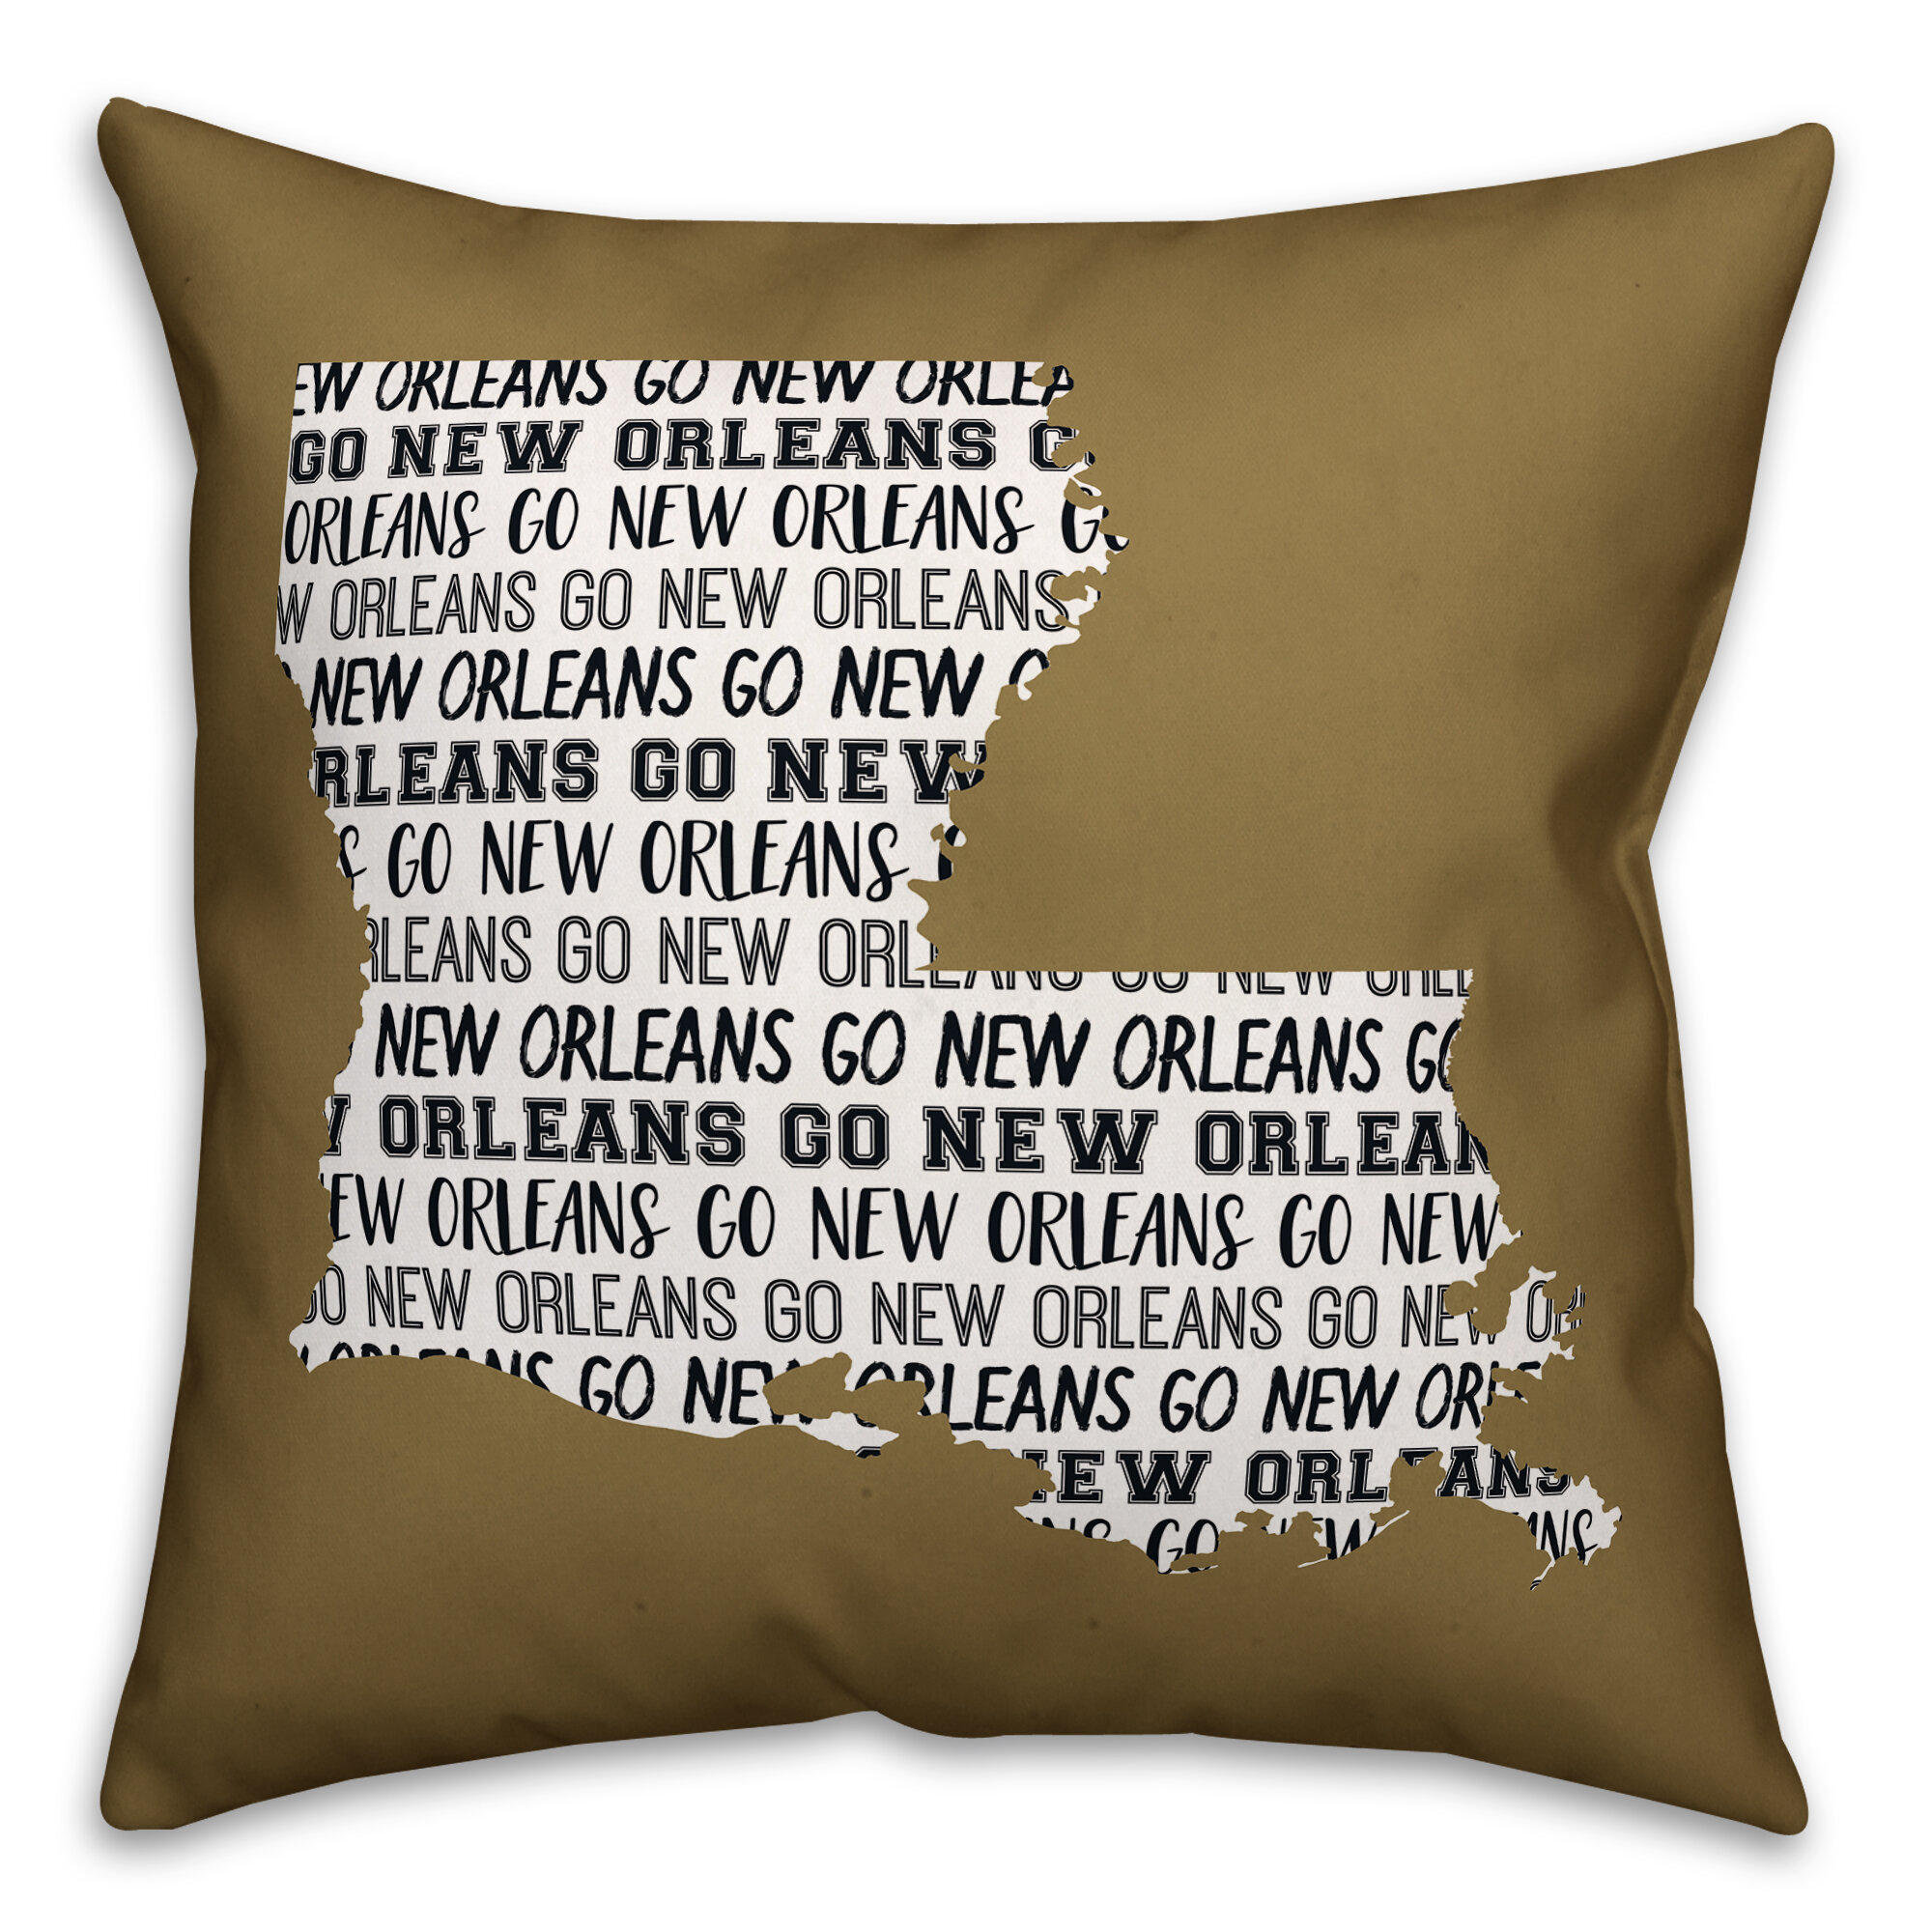 Ebern Designs Crandall Go New Orleans Indoor Outdoor Throw Pillow Wayfair